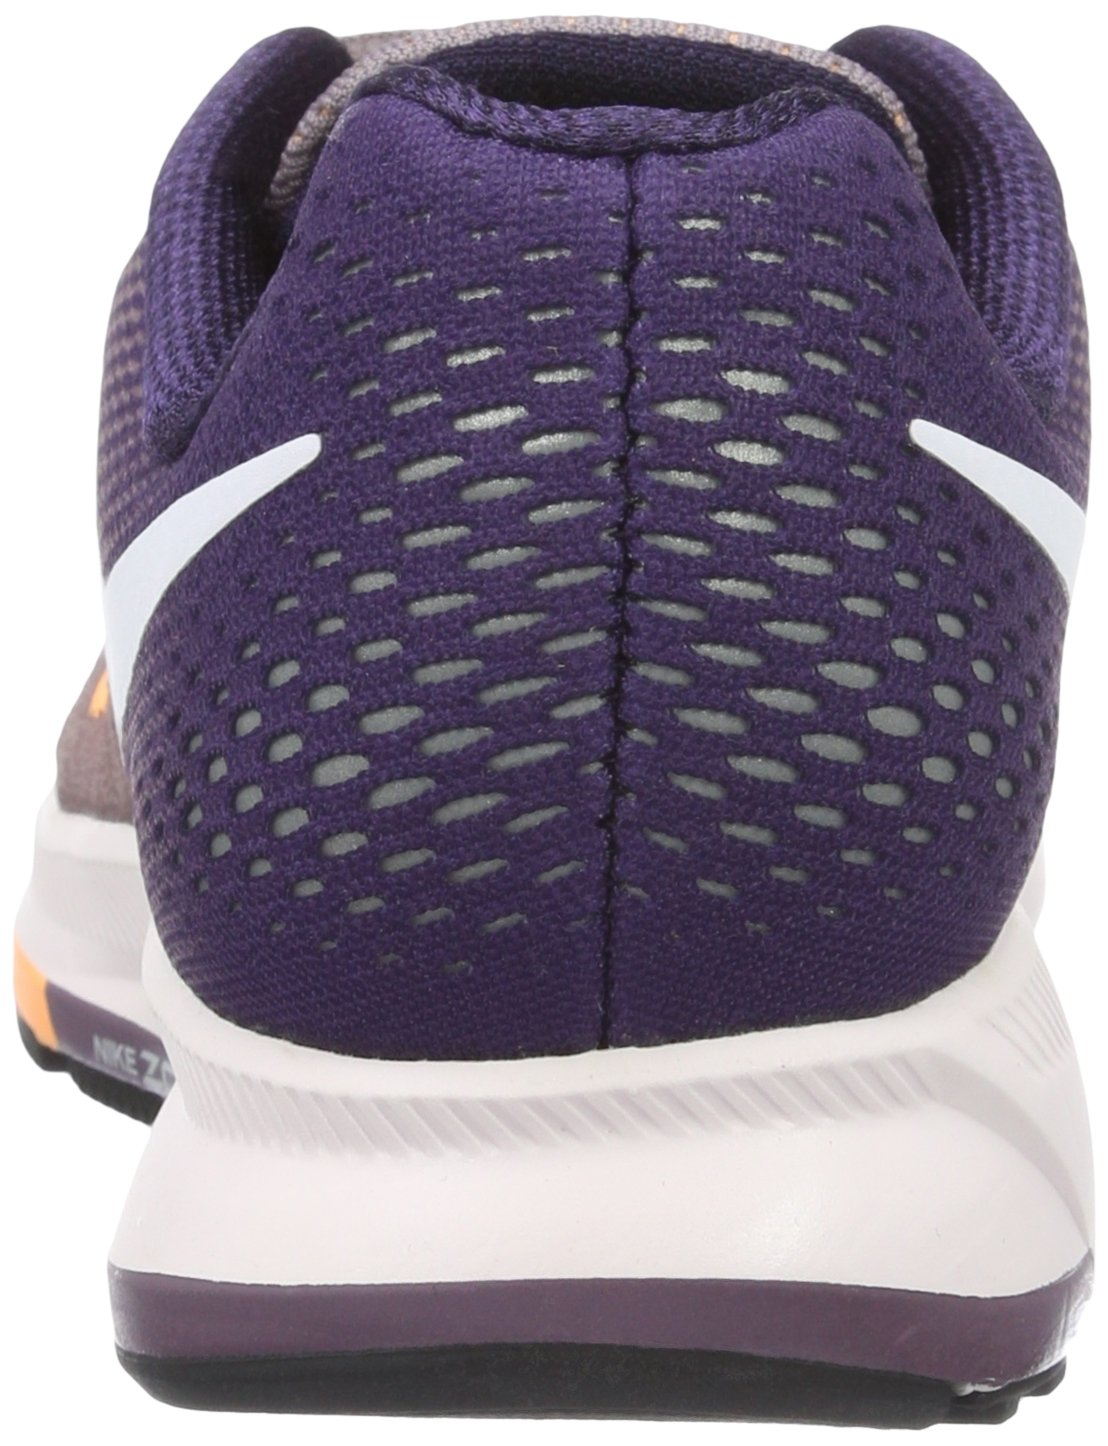 NIKE Women's B01CIYU0ZA Air Zoom Pegasus 33 B01CIYU0ZA Women's 11.5 B(M) US|Purple 779a21